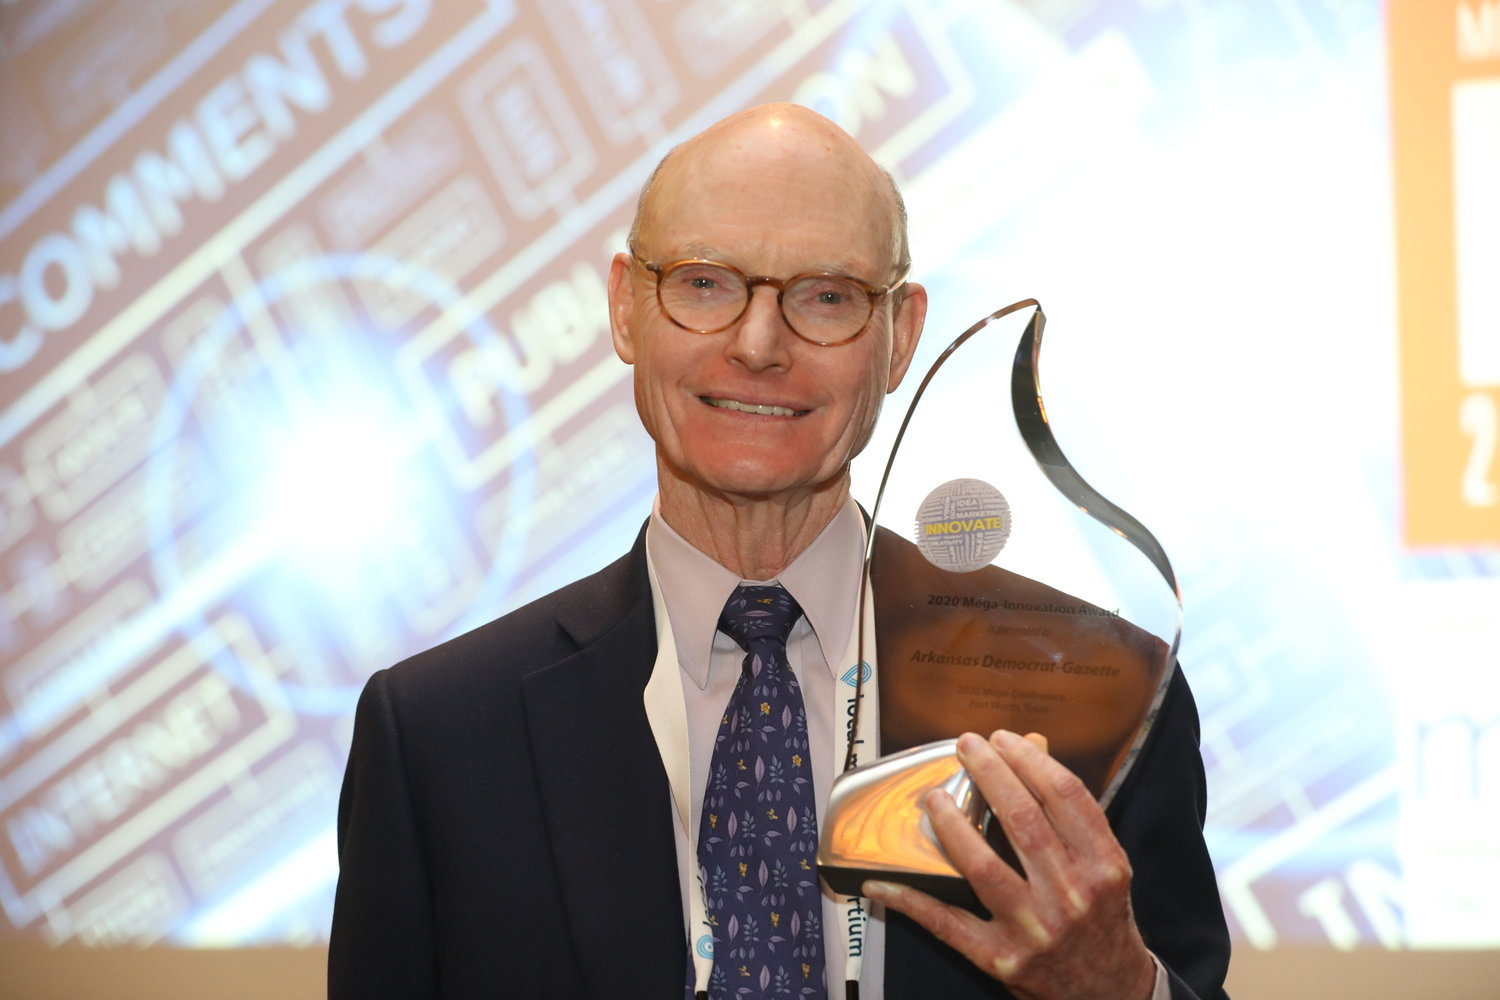 Walter E. Hussman Jr., publisher of the Arkansas Democrat-Gazette, was presented with the Mega-Innovation Award, Tuesday in Fort Worth. (Photo by Bob Booth)